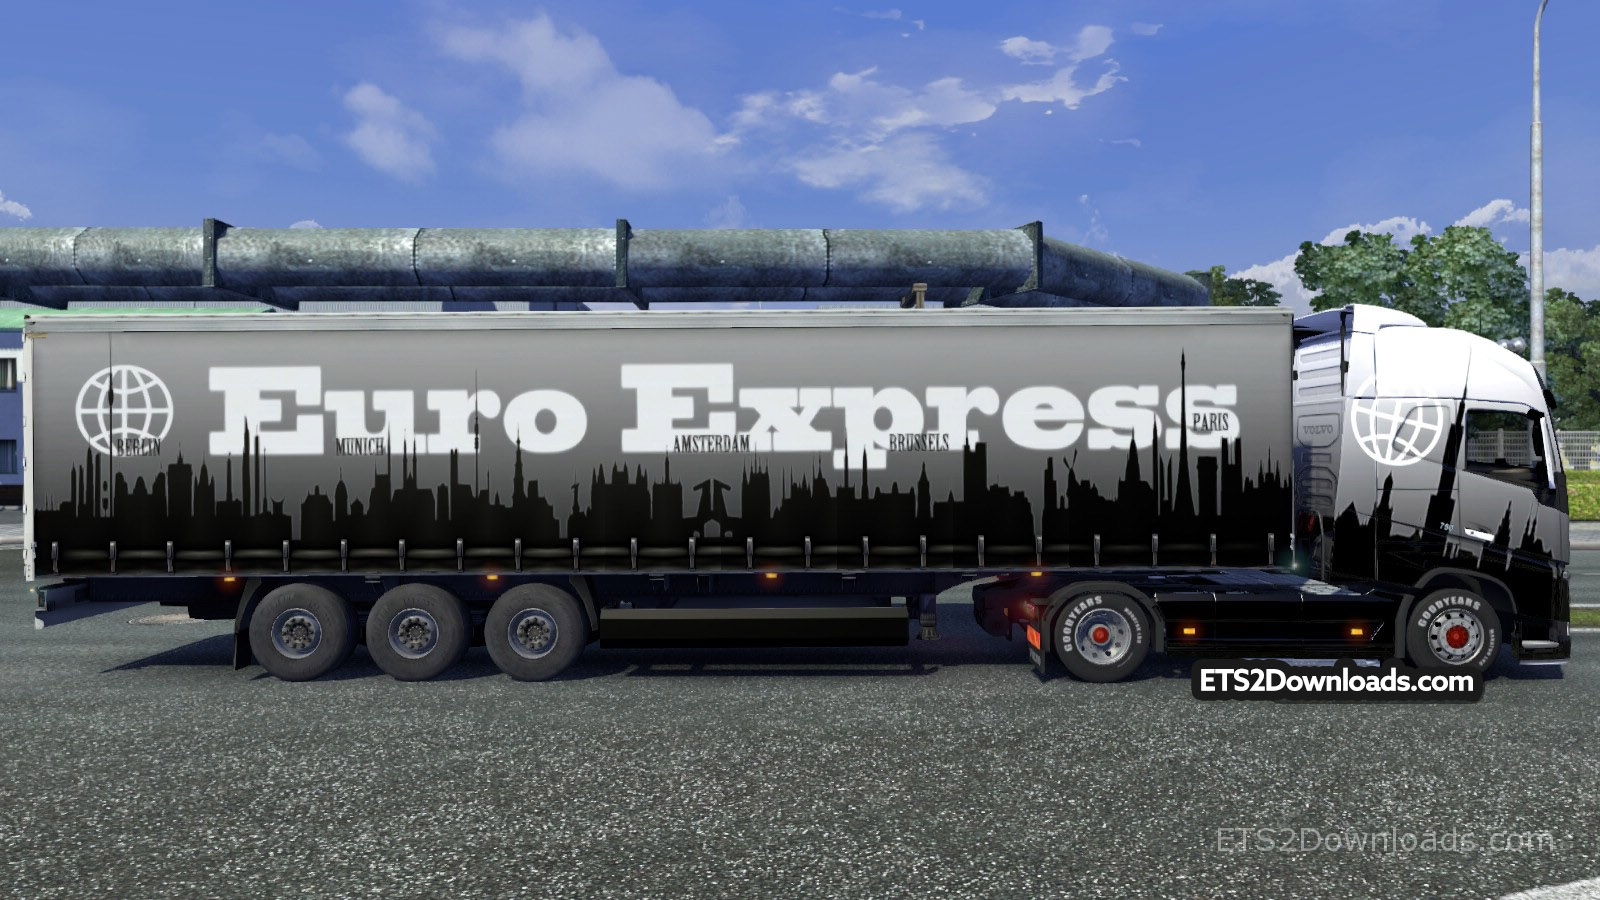 euro-express-skin-and-trailer-for-volvo-fh-2012